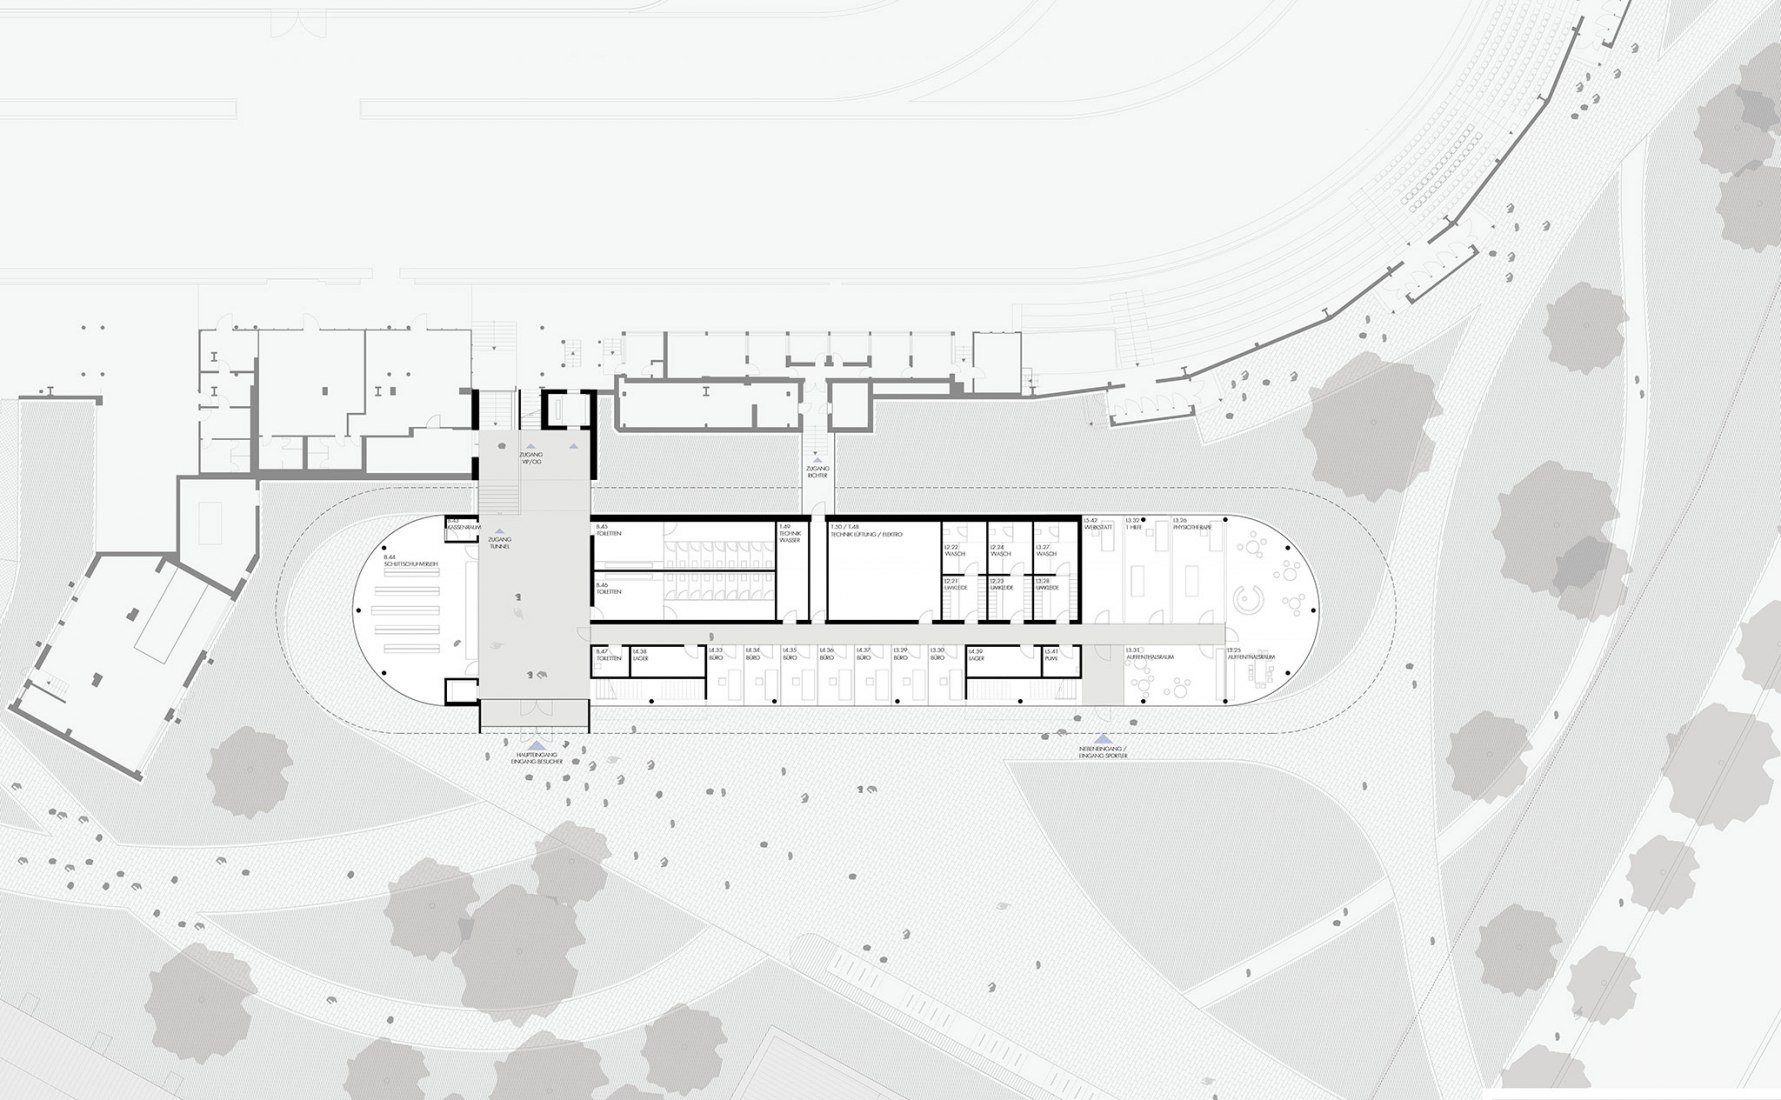 Ground floor plan. Extension of the Ice Rink Sports Centre by Nieto Sobejano Arquitectos. Courtesy of Senate Department for Urban Development and Housing